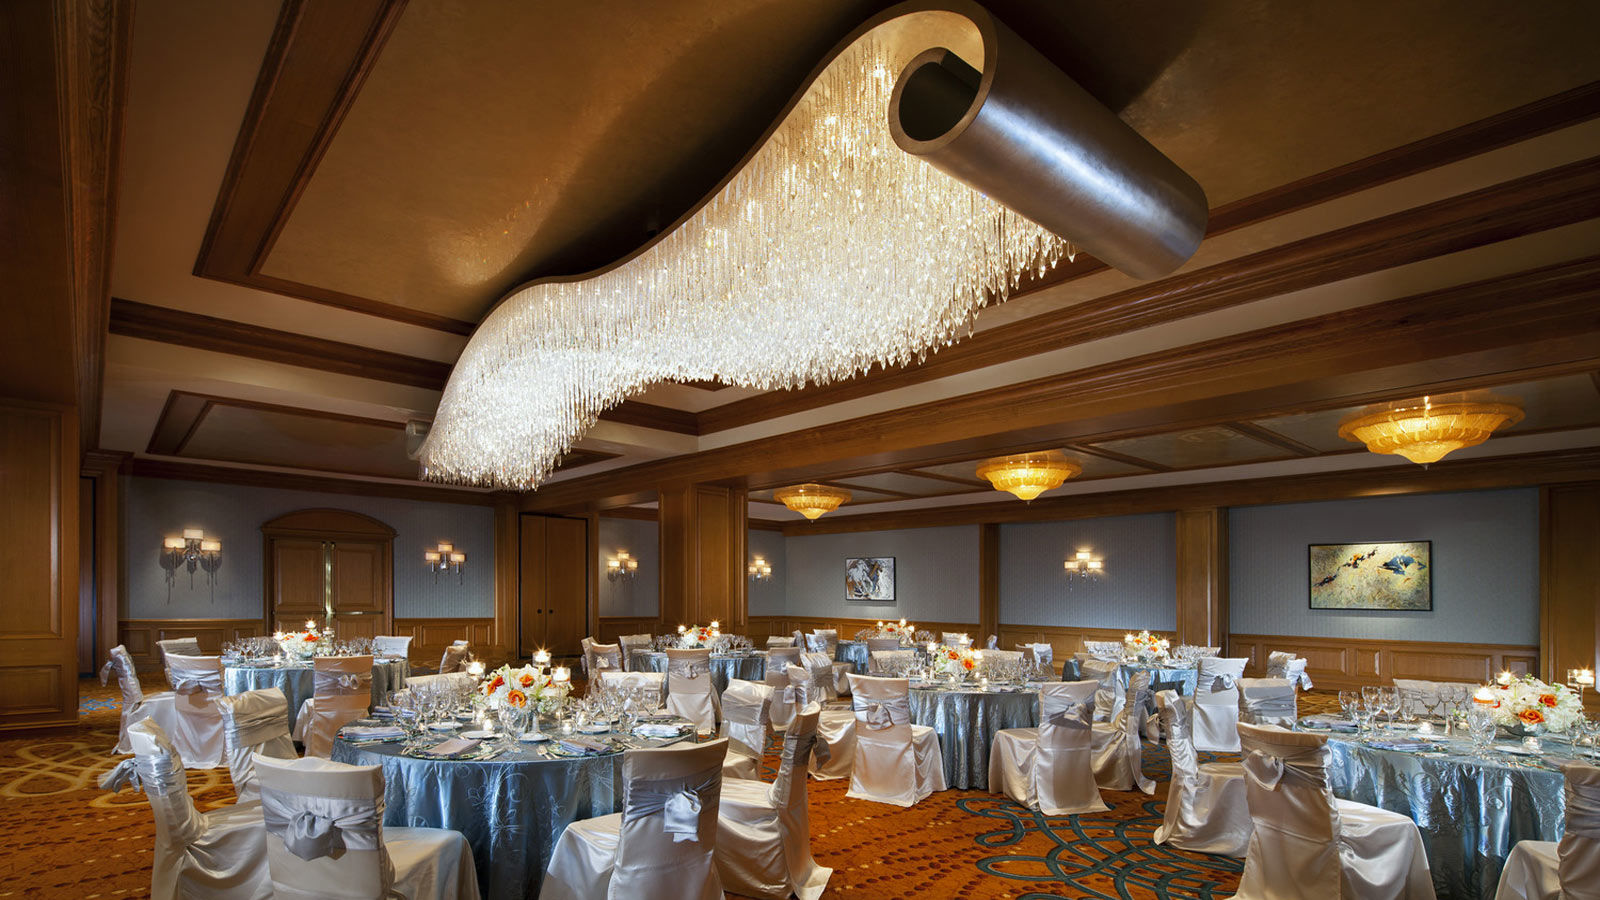 Luxury Wedding Venues in Houston - The Ballroom